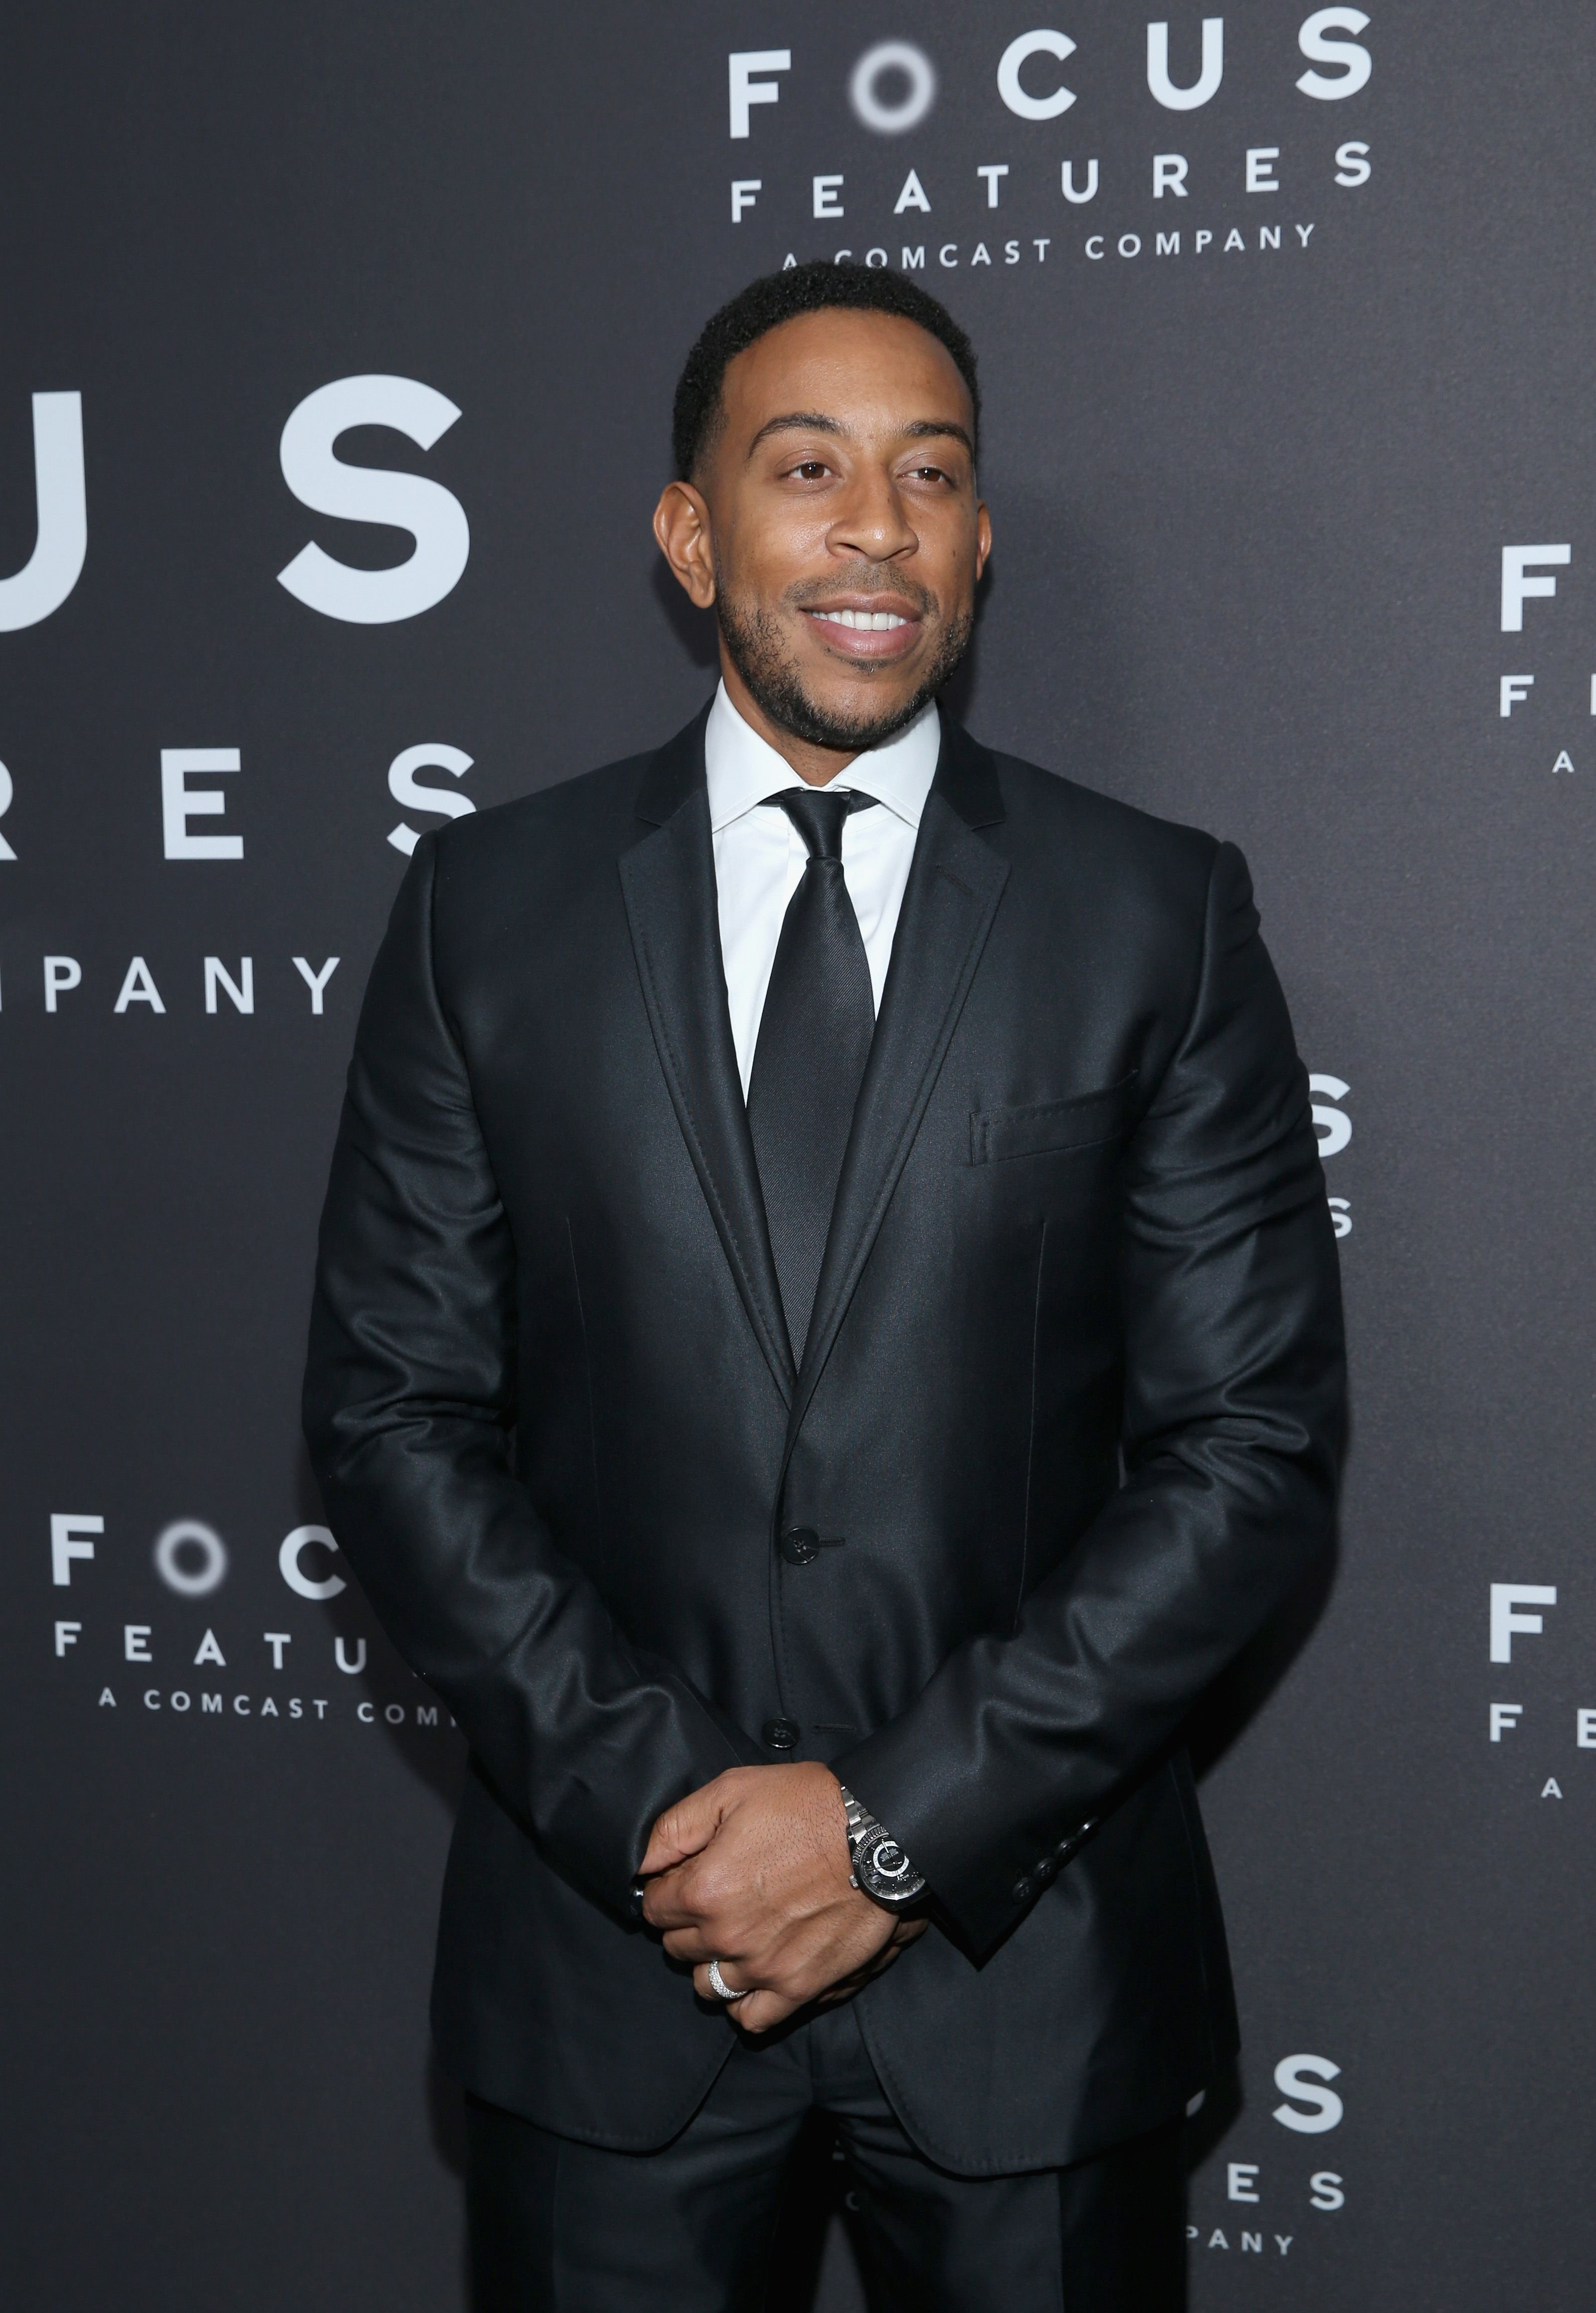 """Christopher """"Ludacris"""" Bridges attends Focus Features' Golden Globes after-party in Beverly Hills, California in January 2017. 